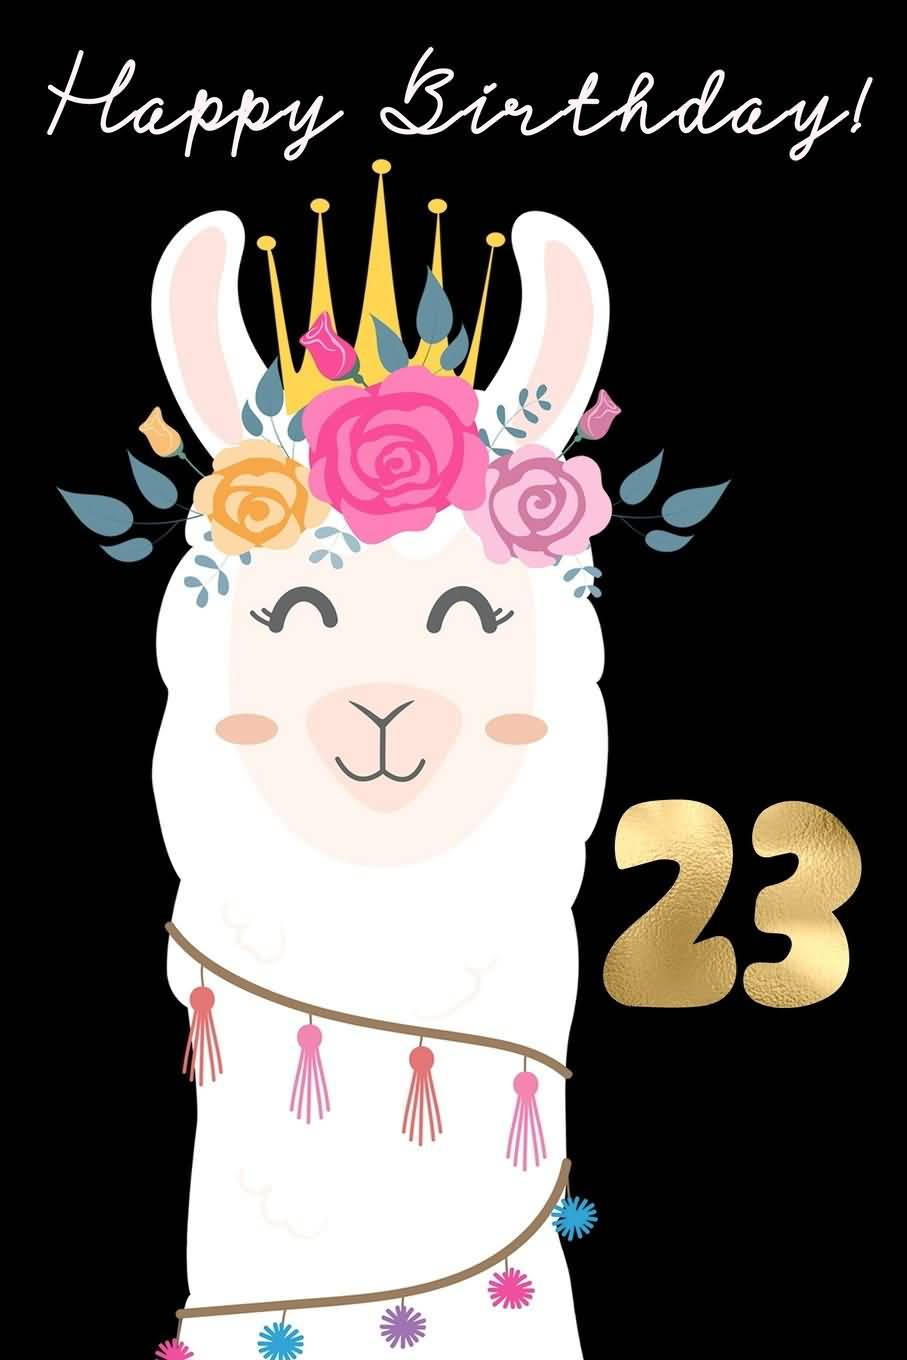 Best Happy 23rd Birthday Picture For Facebook